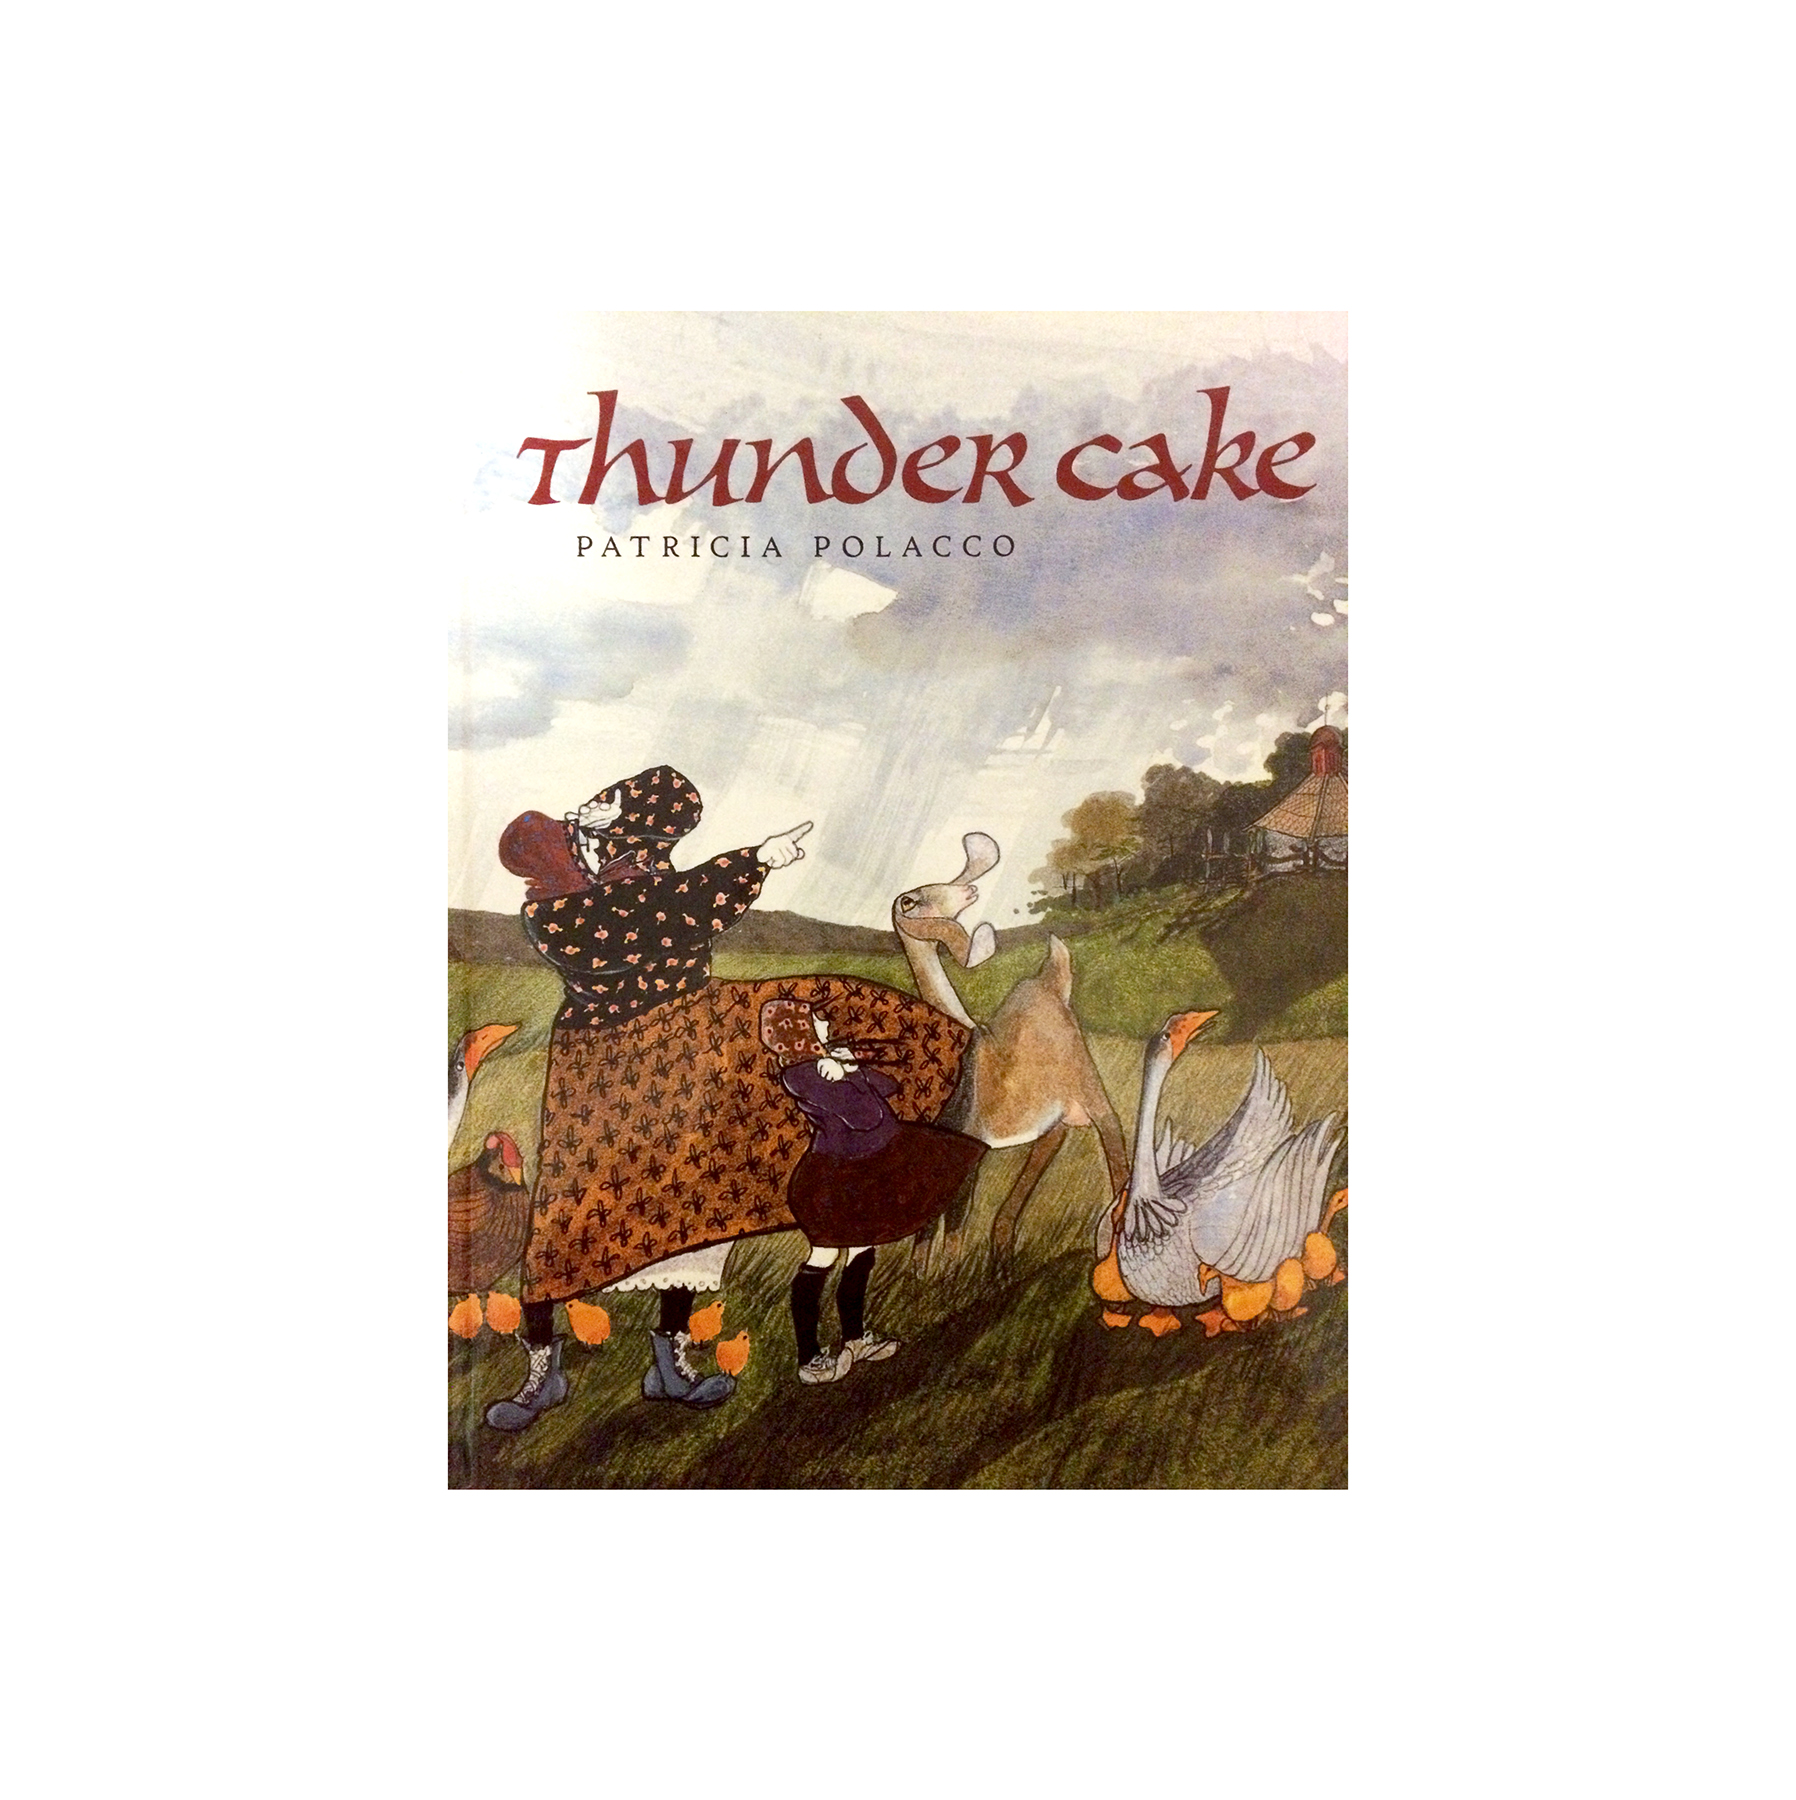 Thunder Cake, by Patricia Polacco